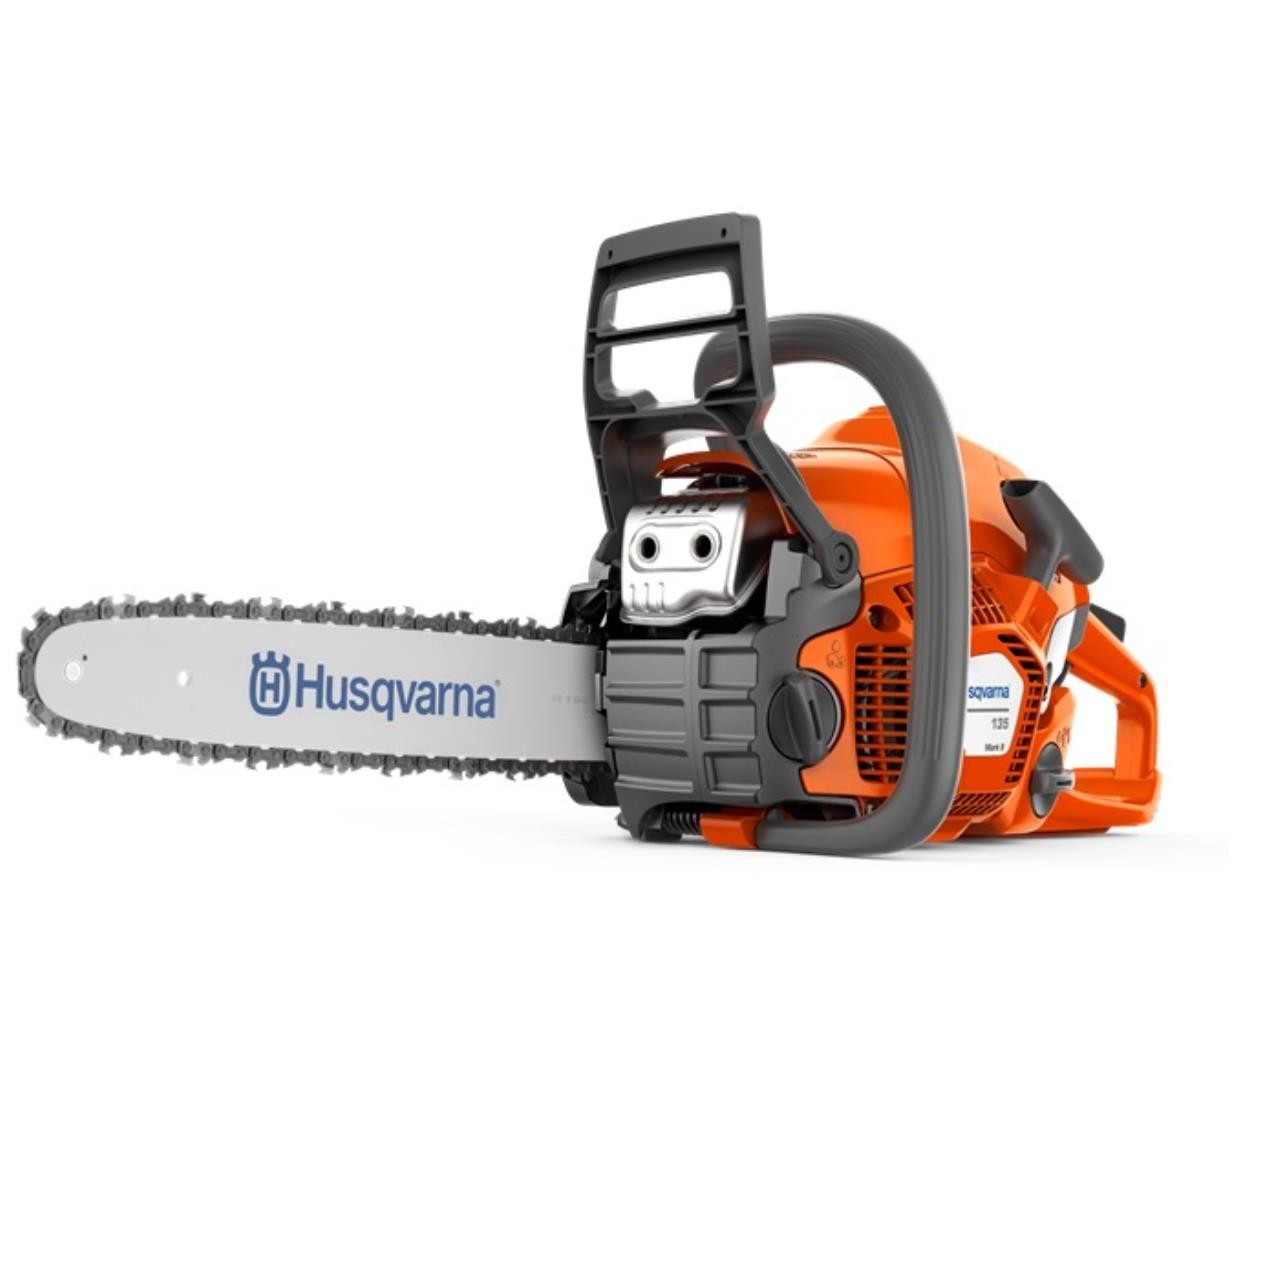 Husqvarna 135 Mark II 14""